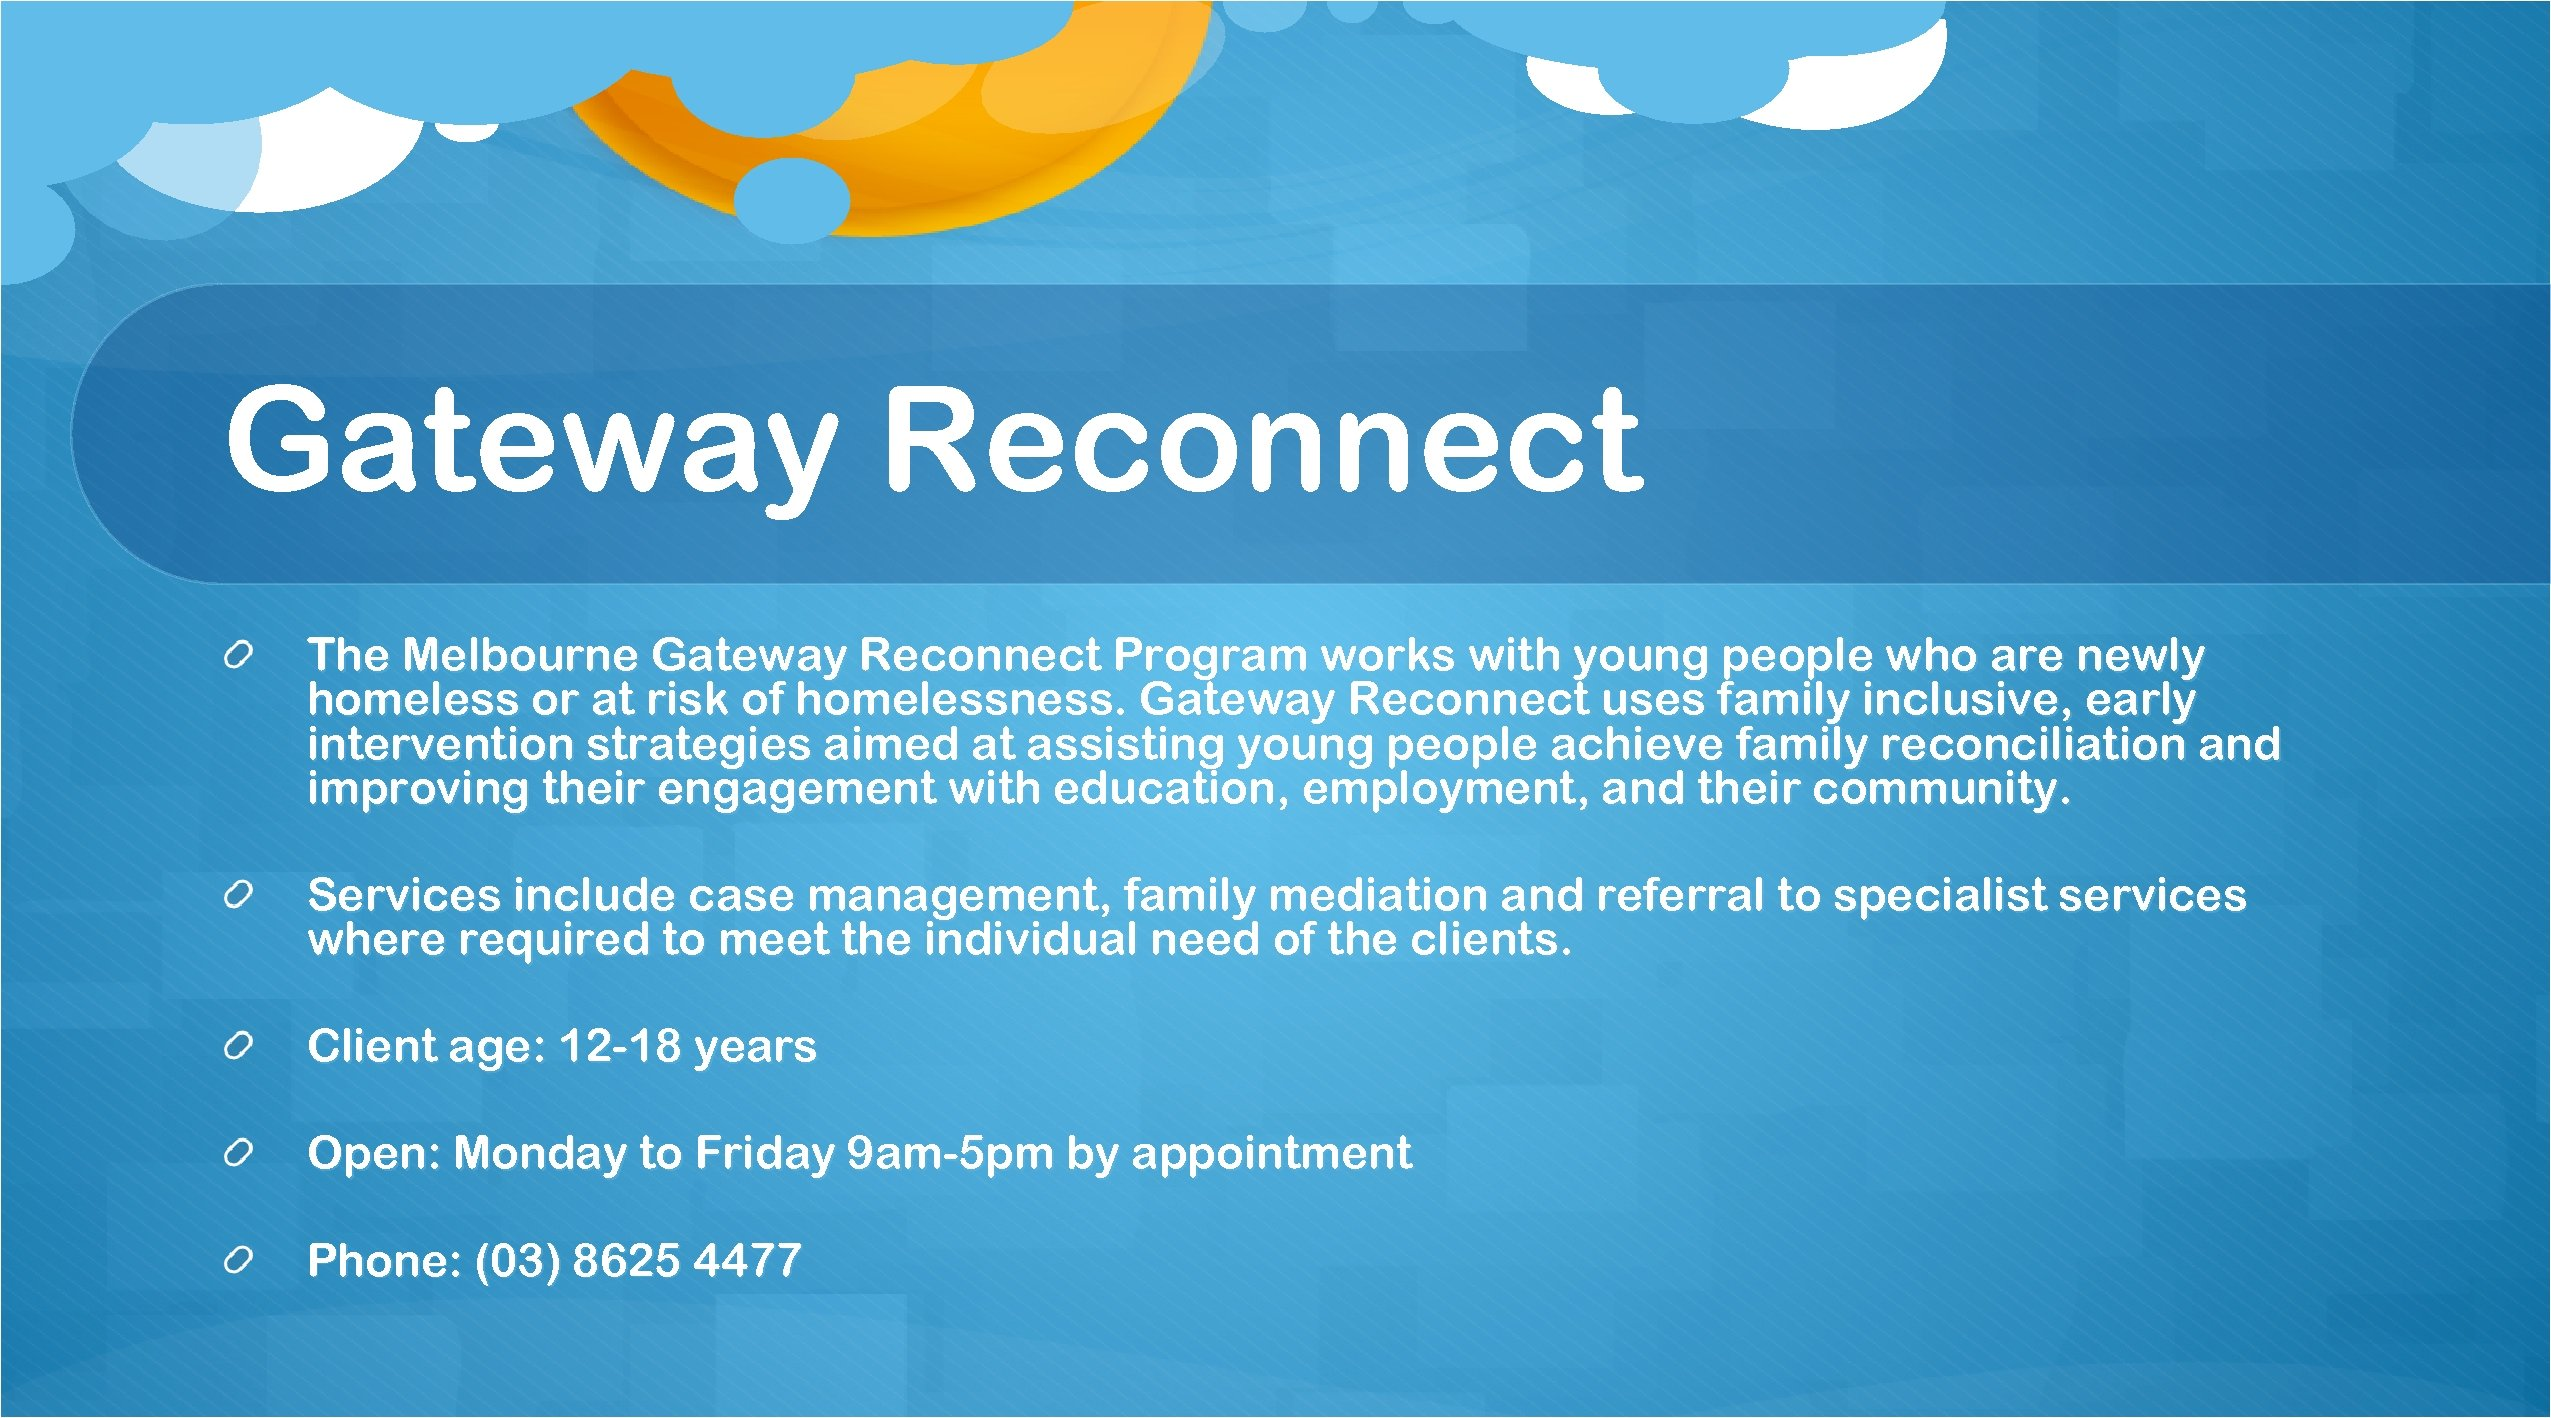 Gateway Reconnect The Melbourne Gateway Reconnect Program works with young people who are newly